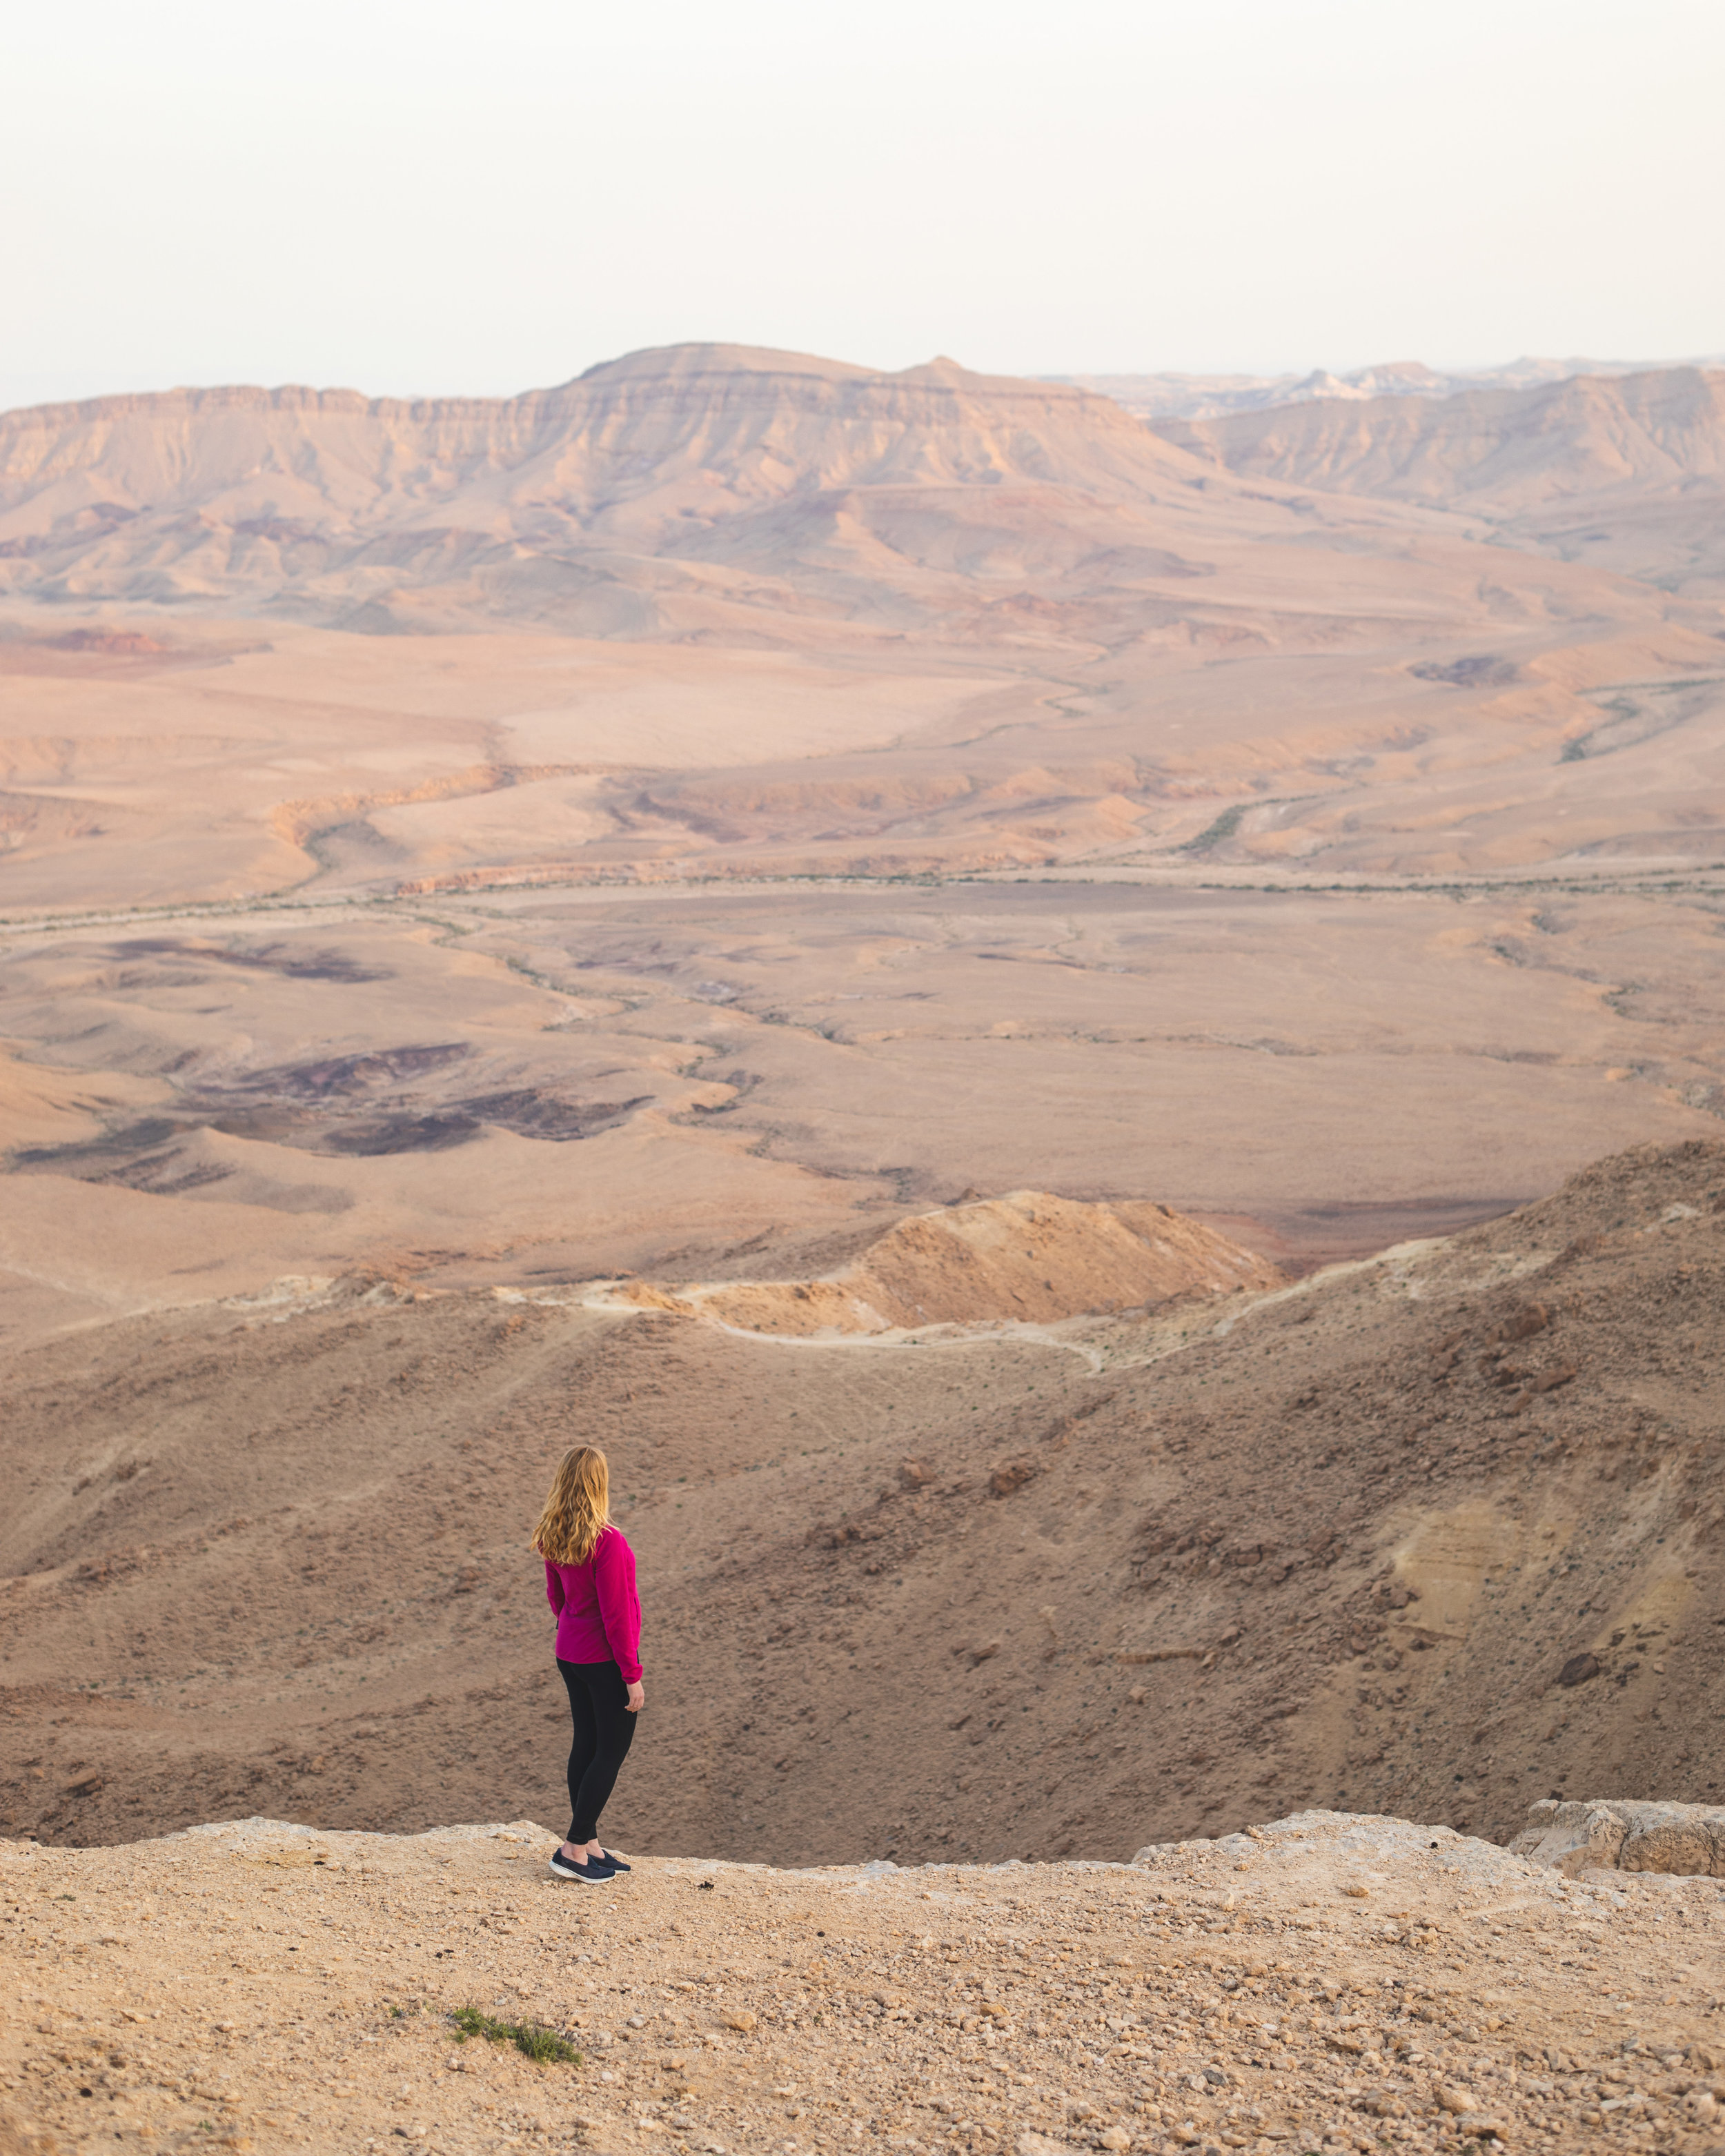 Viewpoints in Mitzpe Ramon - Things to do in Negev